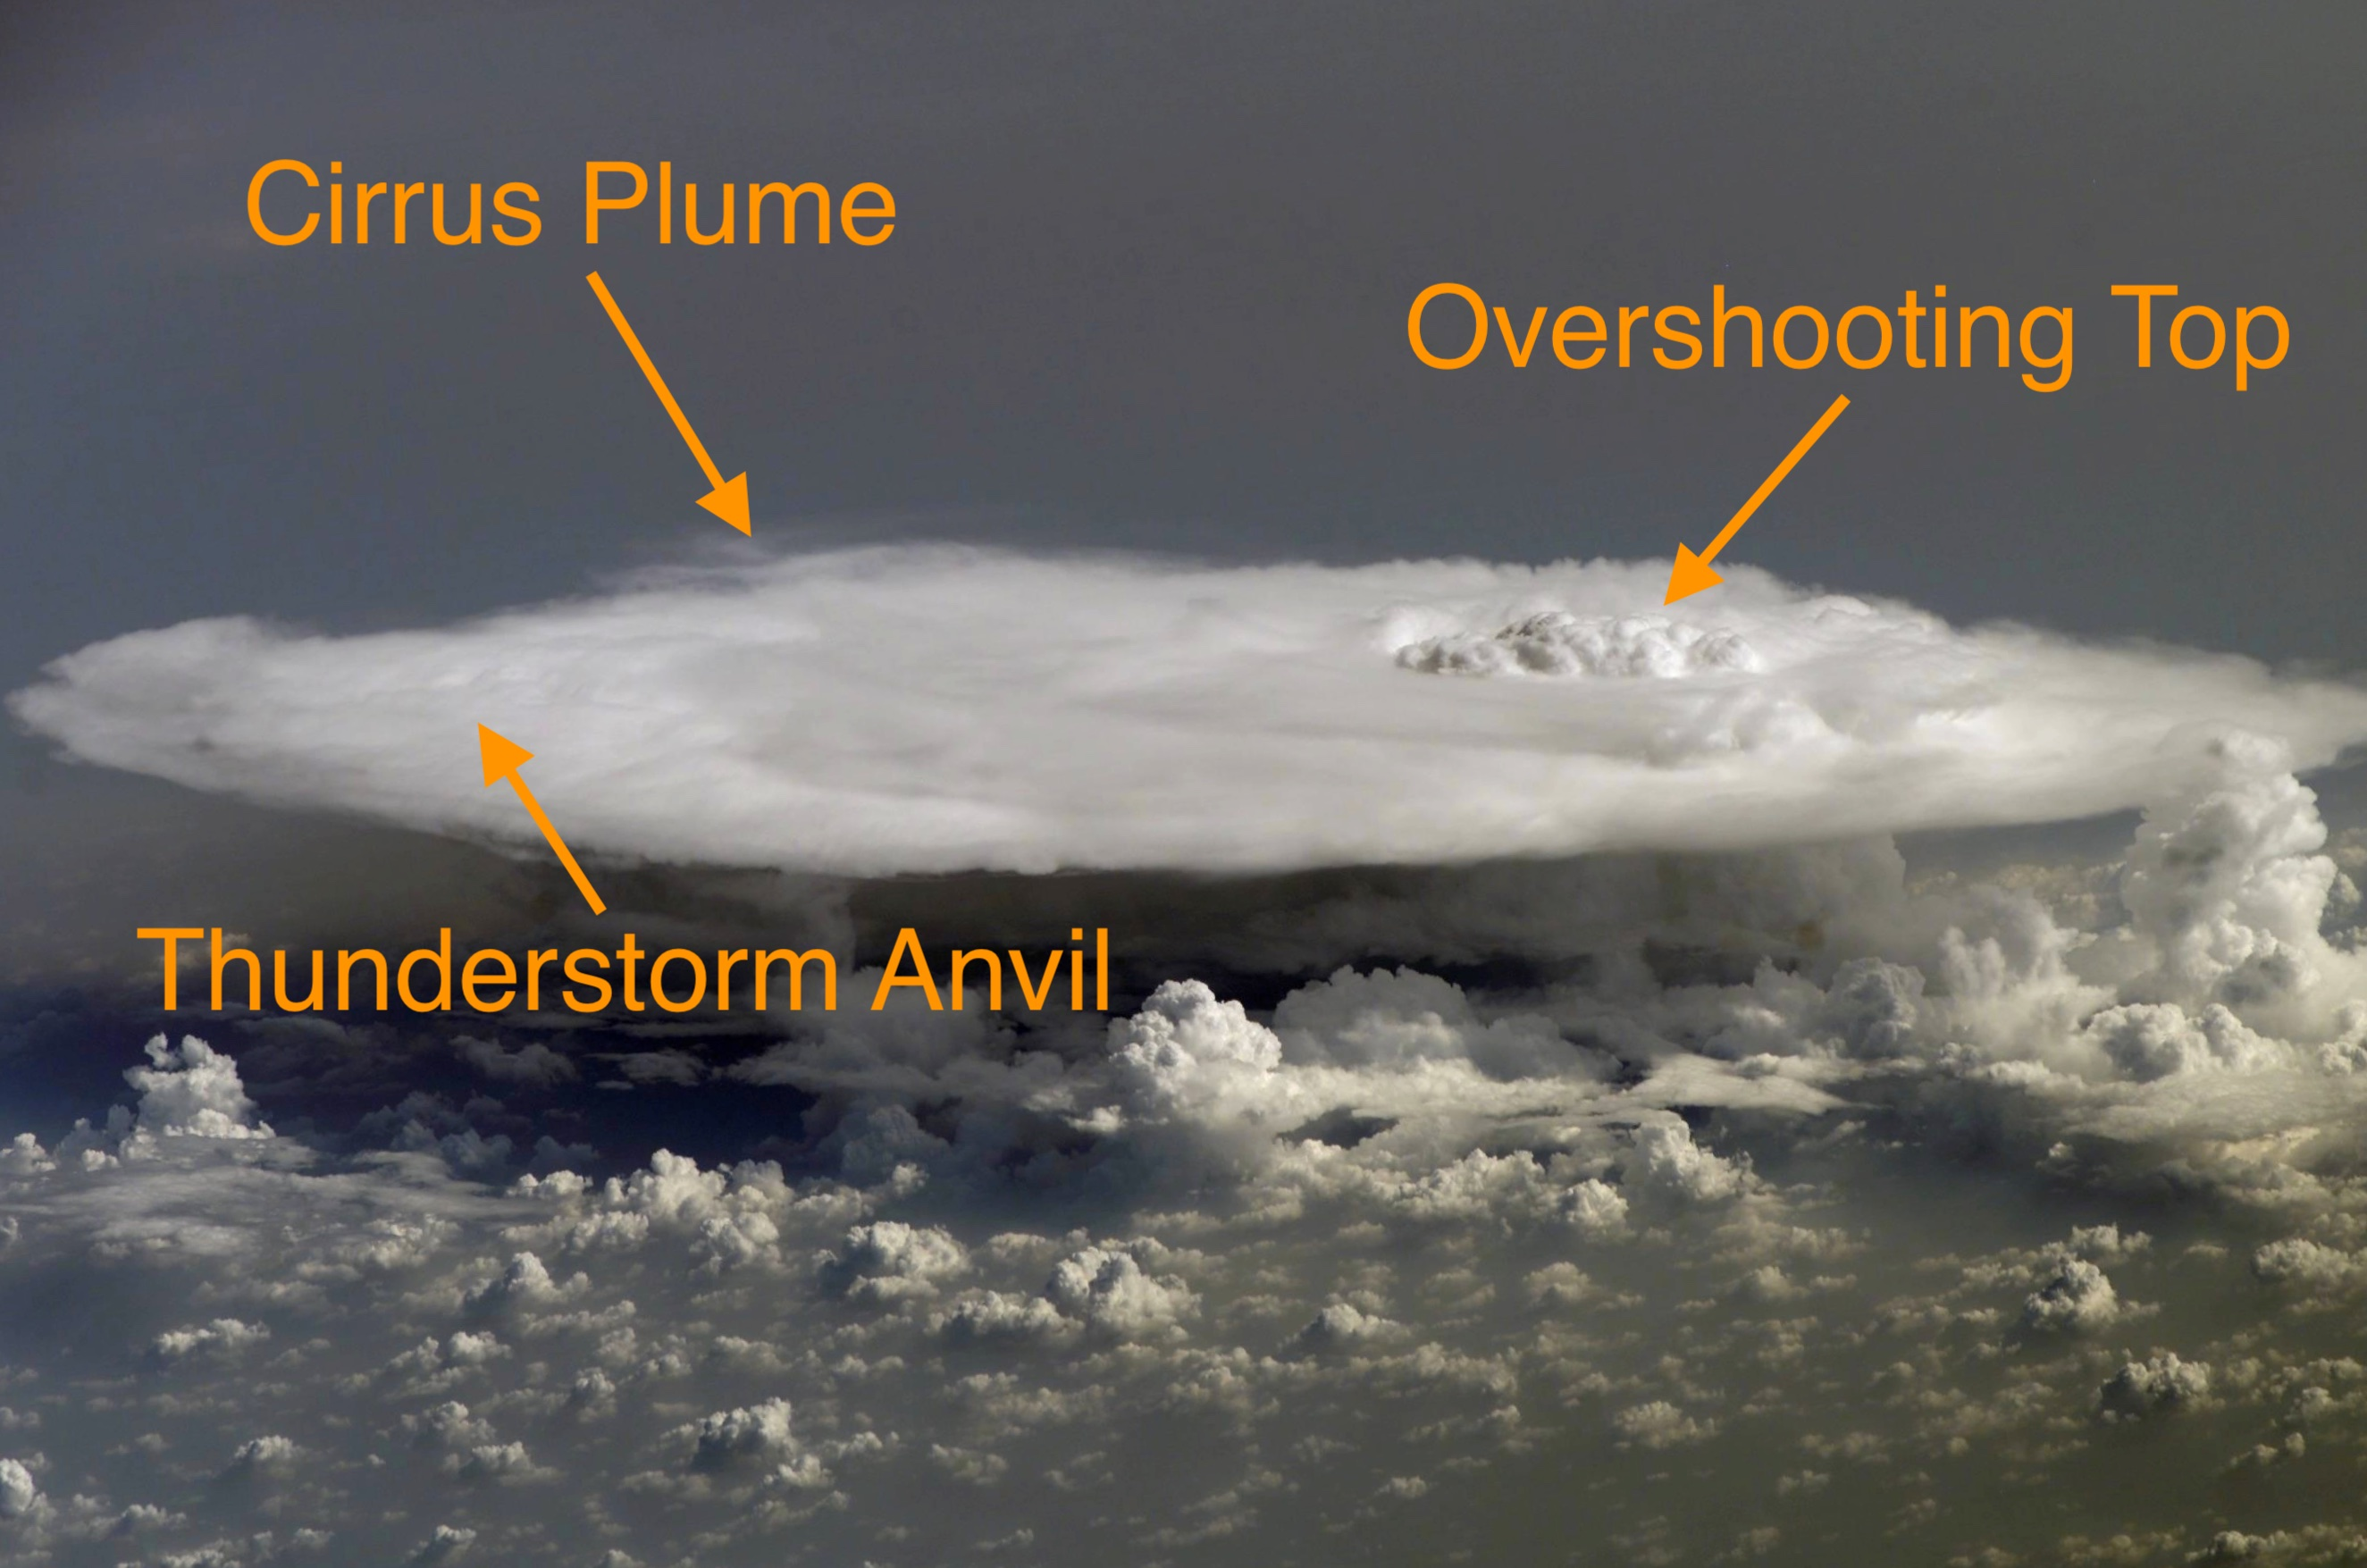 This image is a photograph from the International Space Station of an intense overshooting convective storm with a cirrus plume in the lower stratosphere.